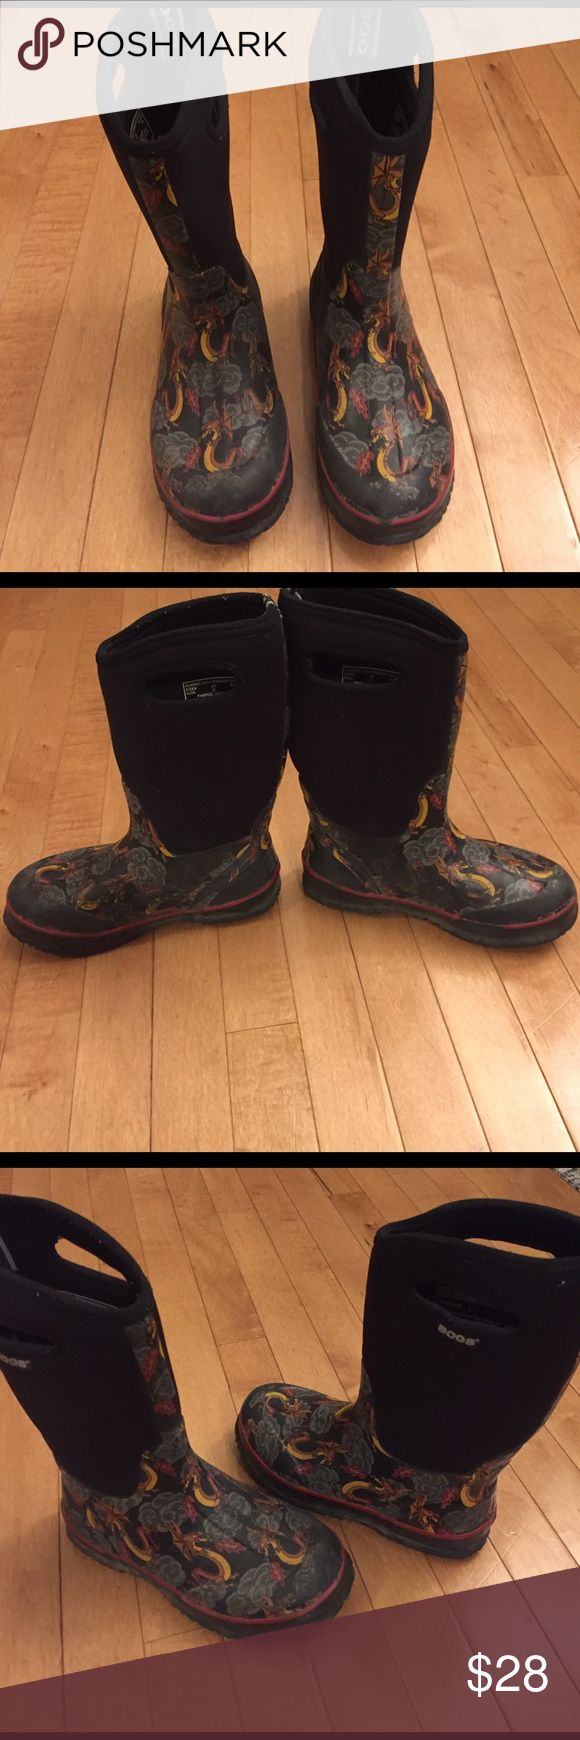 Big Boys Size 3 Bogs Winter Boots / Rain Boots Rated to -30 Below, Great for winter or rain! Good condition, with wear on the pattern and some wear on the bottom but tons of life left! Bogs Shoes Boots